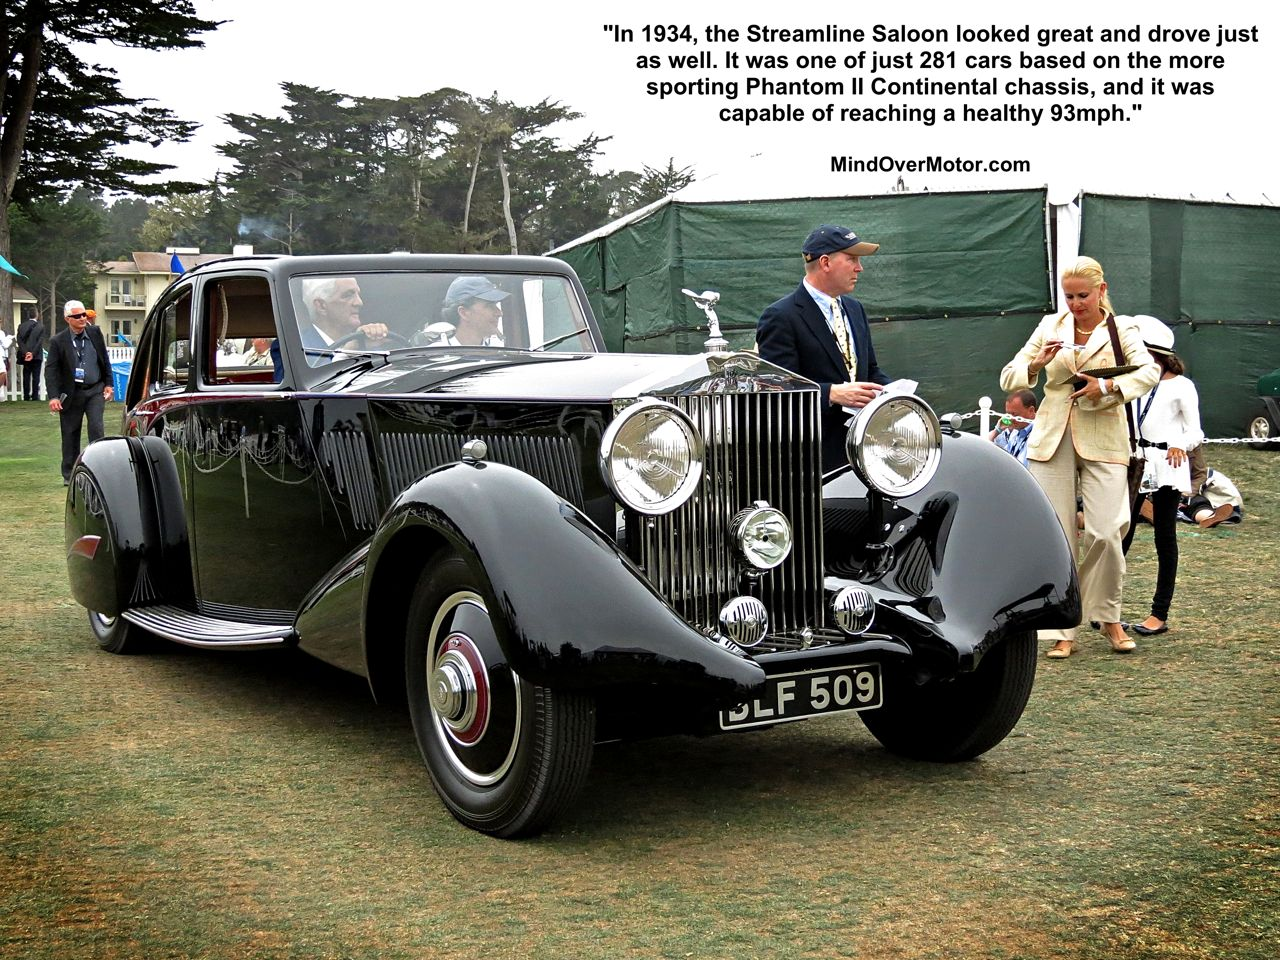 Rolls Royce Phantom II Streamline Saloon award winner at Pebble Beach